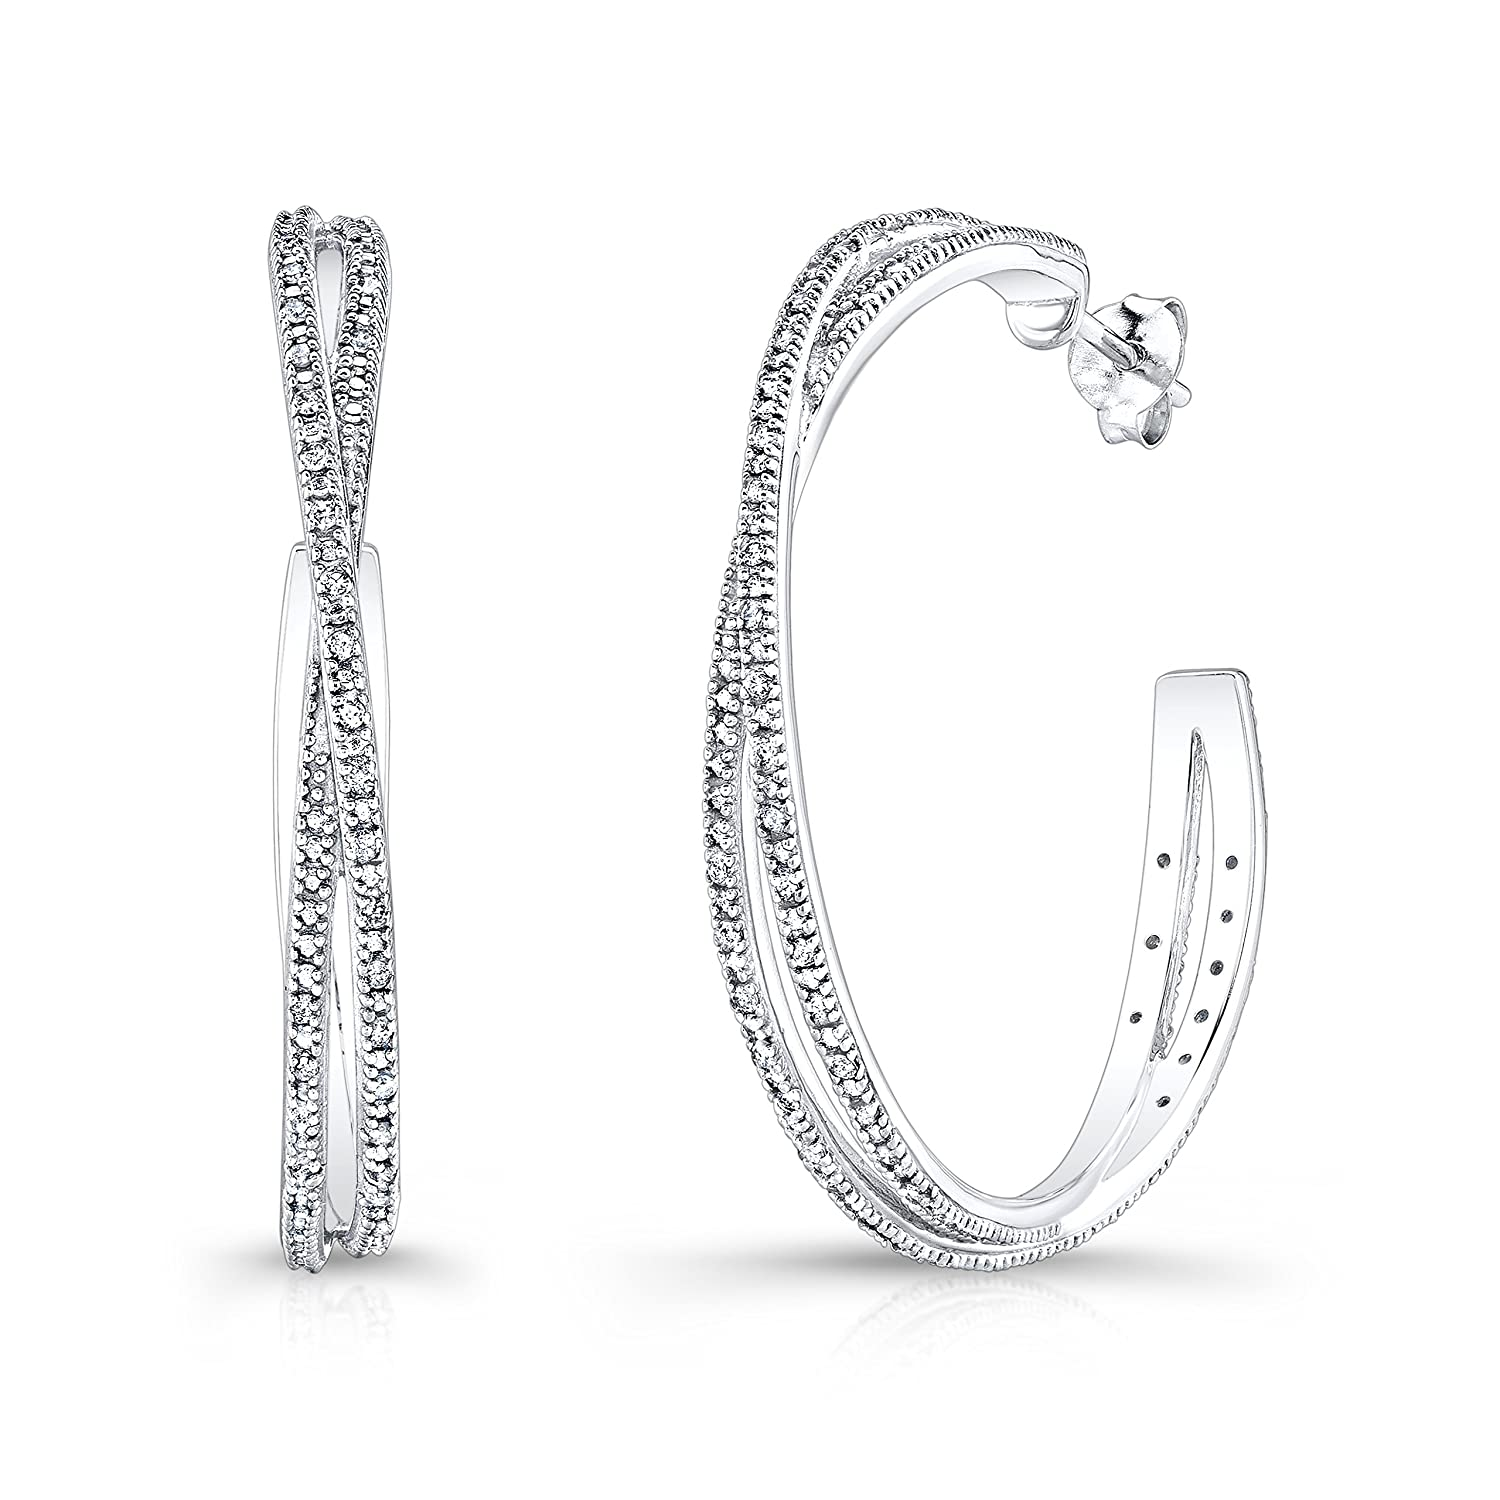 3670a577e Victoria Kay 1/2ct Diamond Criss-Cross Hoop Earrings in Sterling Silver  (J-K, I2-I3)